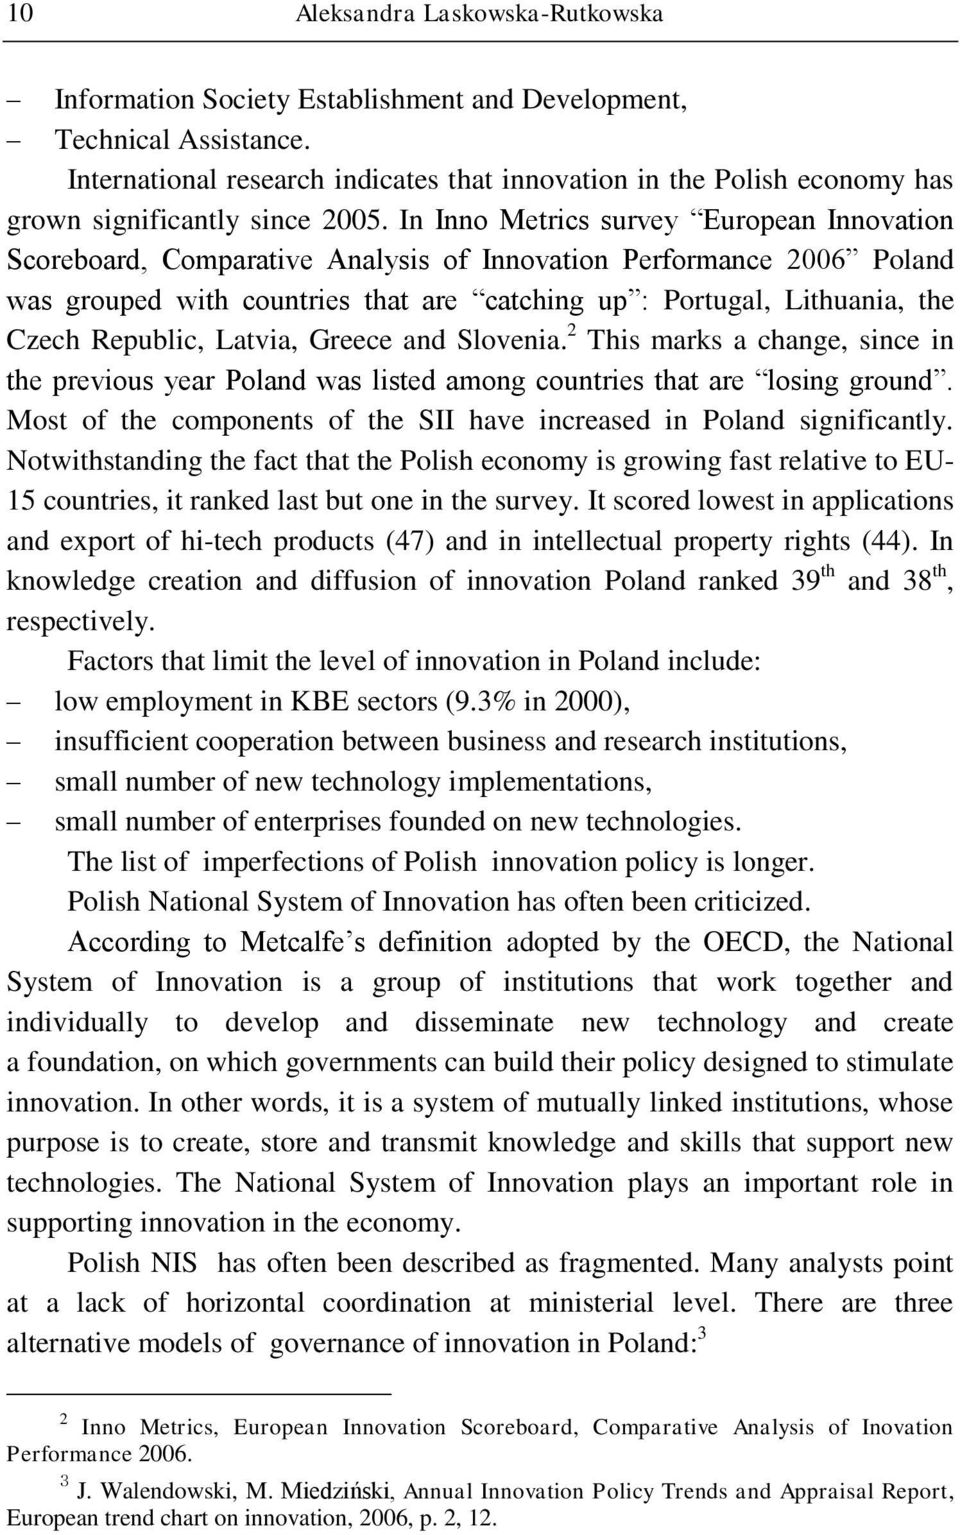 In Inno Metrics survey European Innovation Scoreboard, Comparative Analysis of Innovation Performance 2006 Poland was grouped with countries that are catching up : Portugal, Lithuania, the Czech